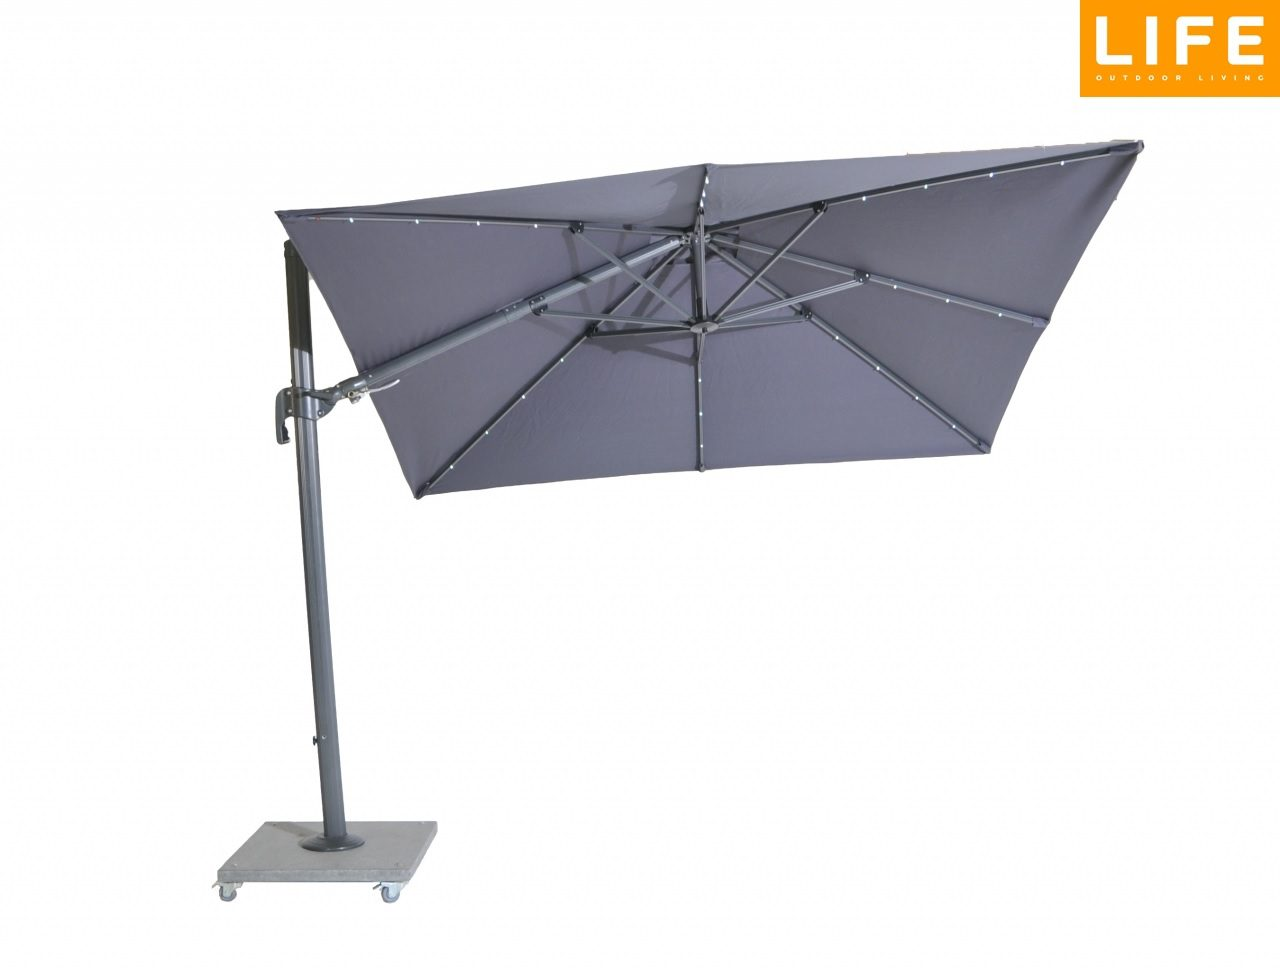 norfolk leisure palermo cantilever parasol 3x3m with leds norwich camping. Black Bedroom Furniture Sets. Home Design Ideas